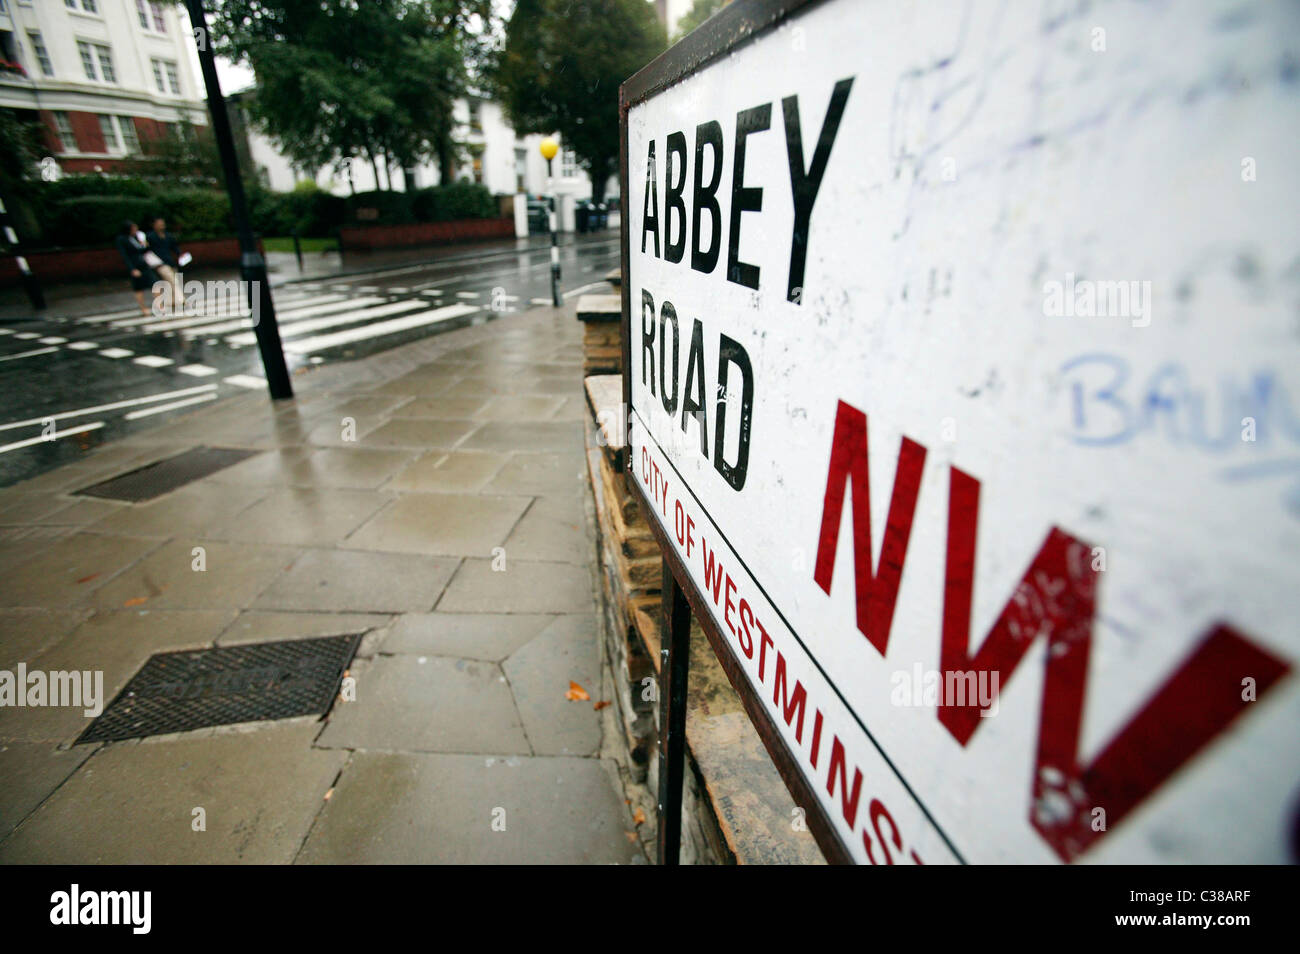 The famous pedestrian crossing outside Abbey Road Studios used by The Beatles on thier album Abbey Road, London. - Stock Image